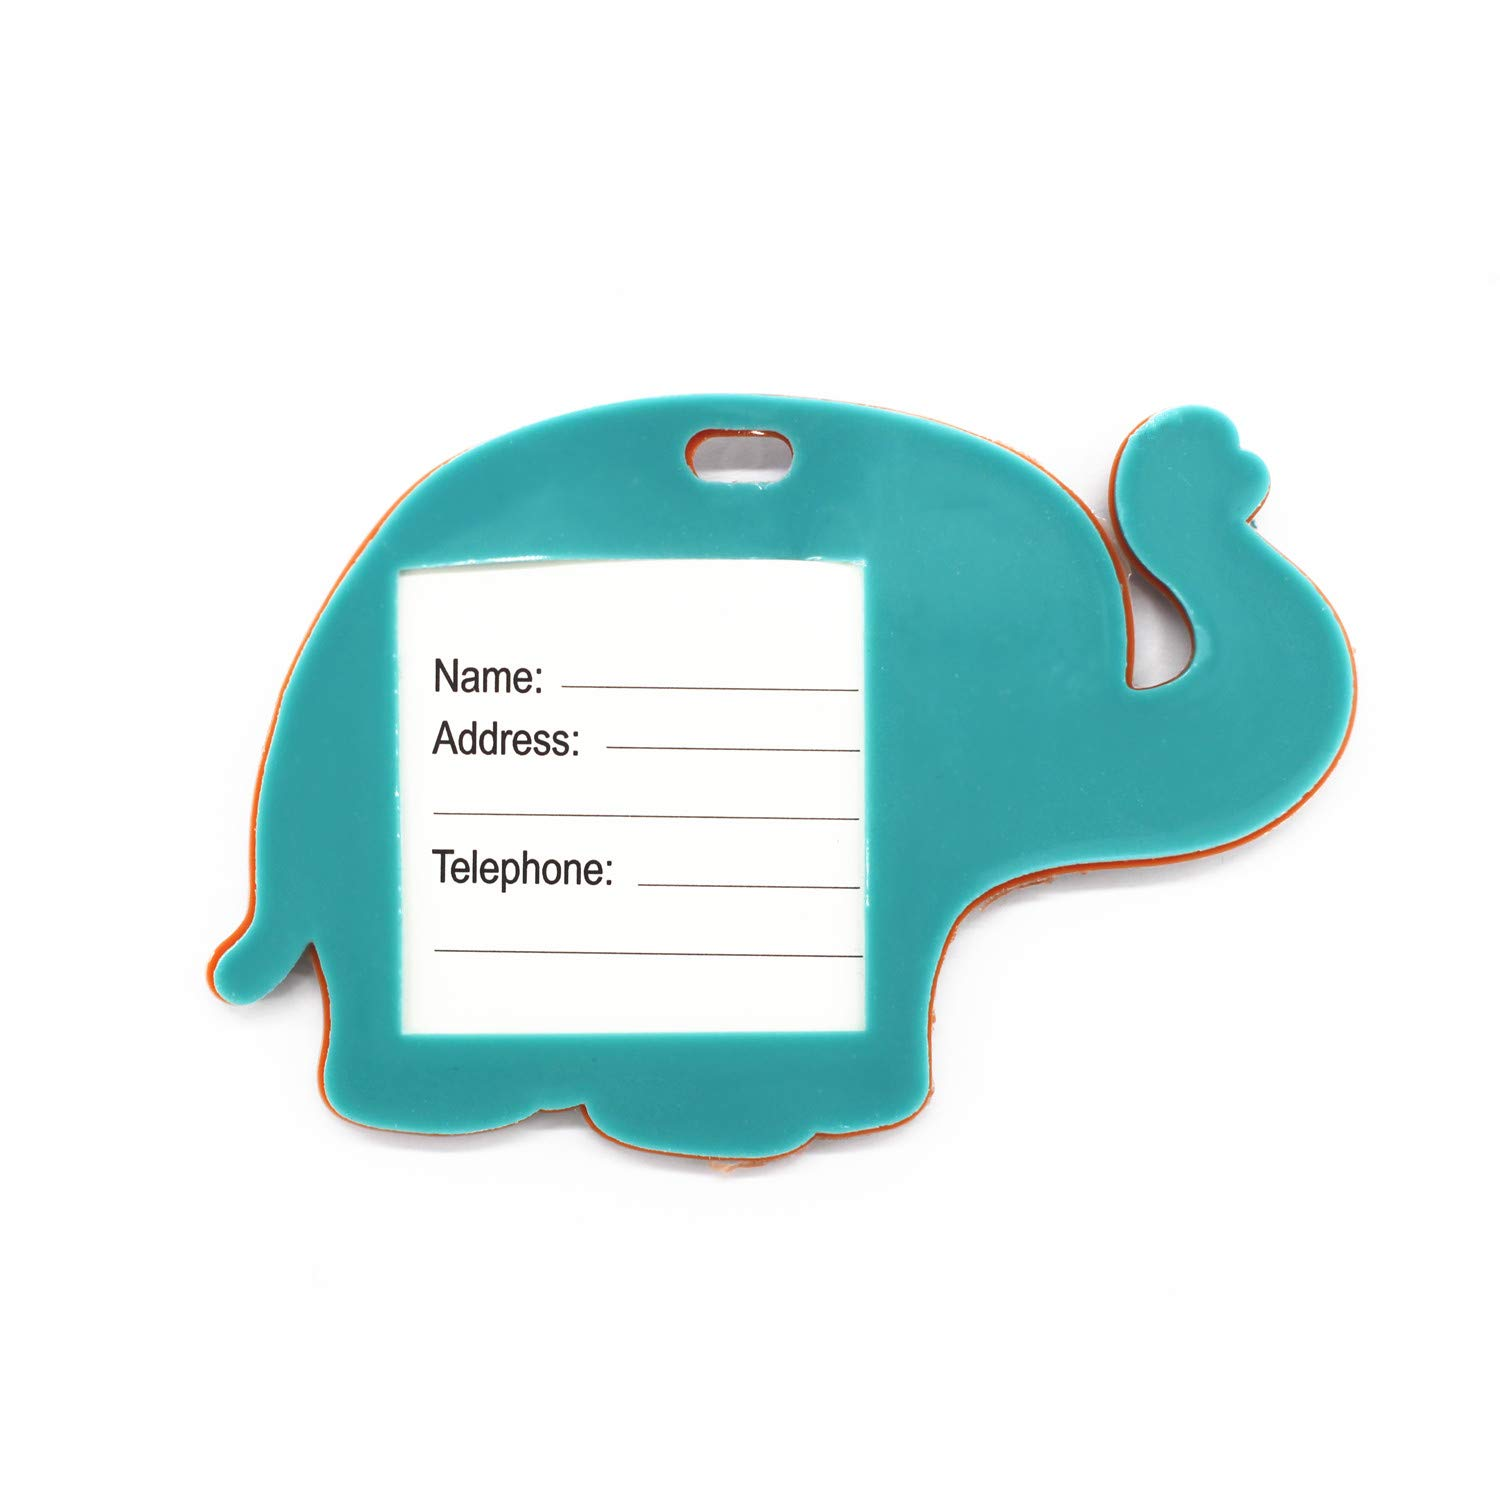 MIAO JIN 6 Pcs Elephant Luggage Tags Suitcase Luggage Tags Boarding Pass Luggage Tags